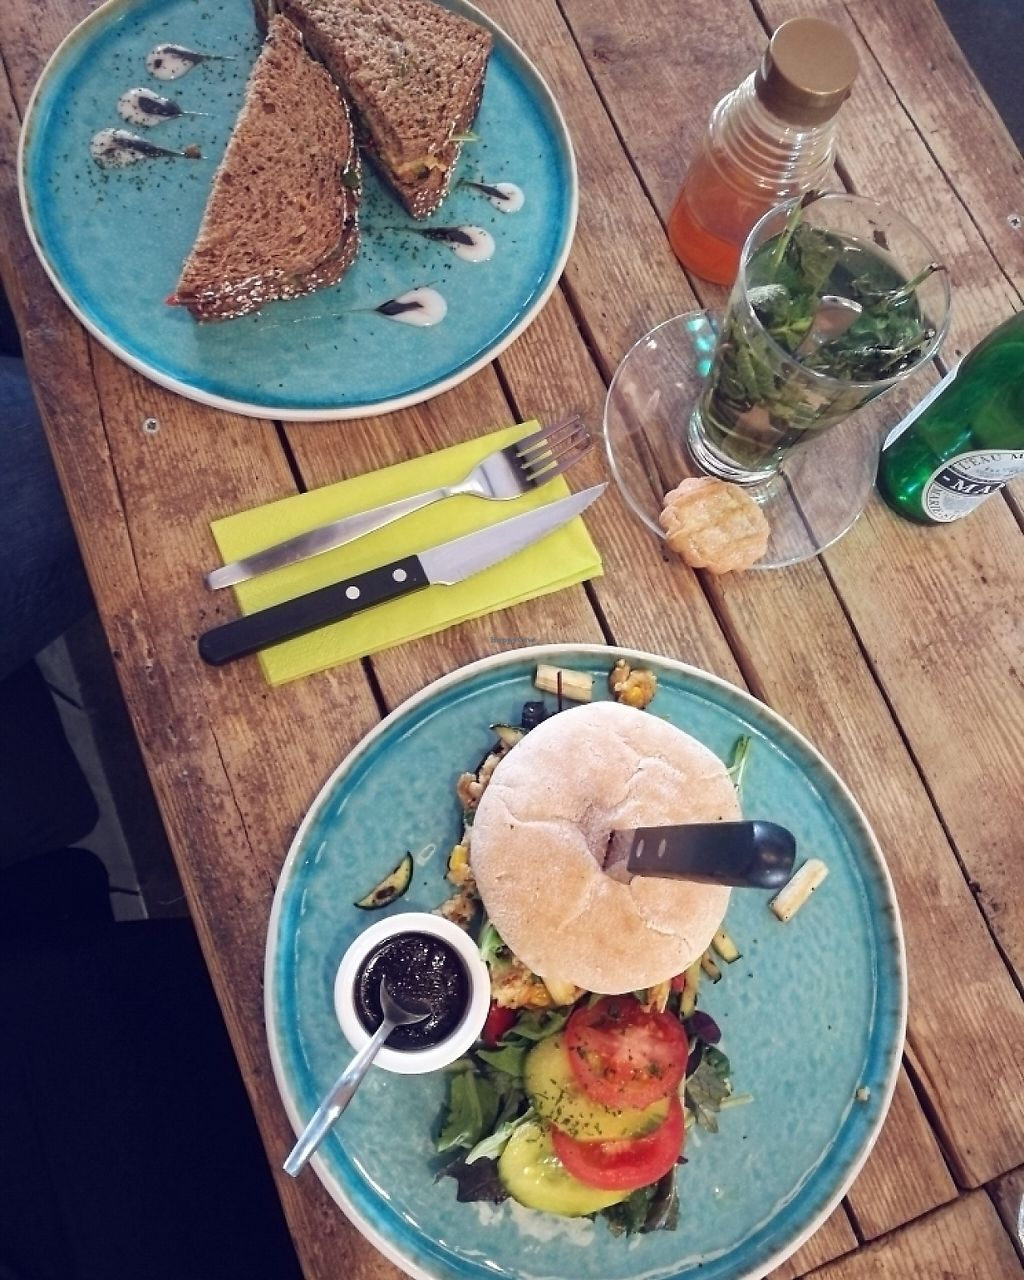 """Photo of Anna's Lunchroom  by <a href=""""/members/profile/claireeline"""">claireeline</a> <br/>Hummus Sandwhich en Tofu Burger <br/> May 23, 2017  - <a href='/contact/abuse/image/90988/261684'>Report</a>"""